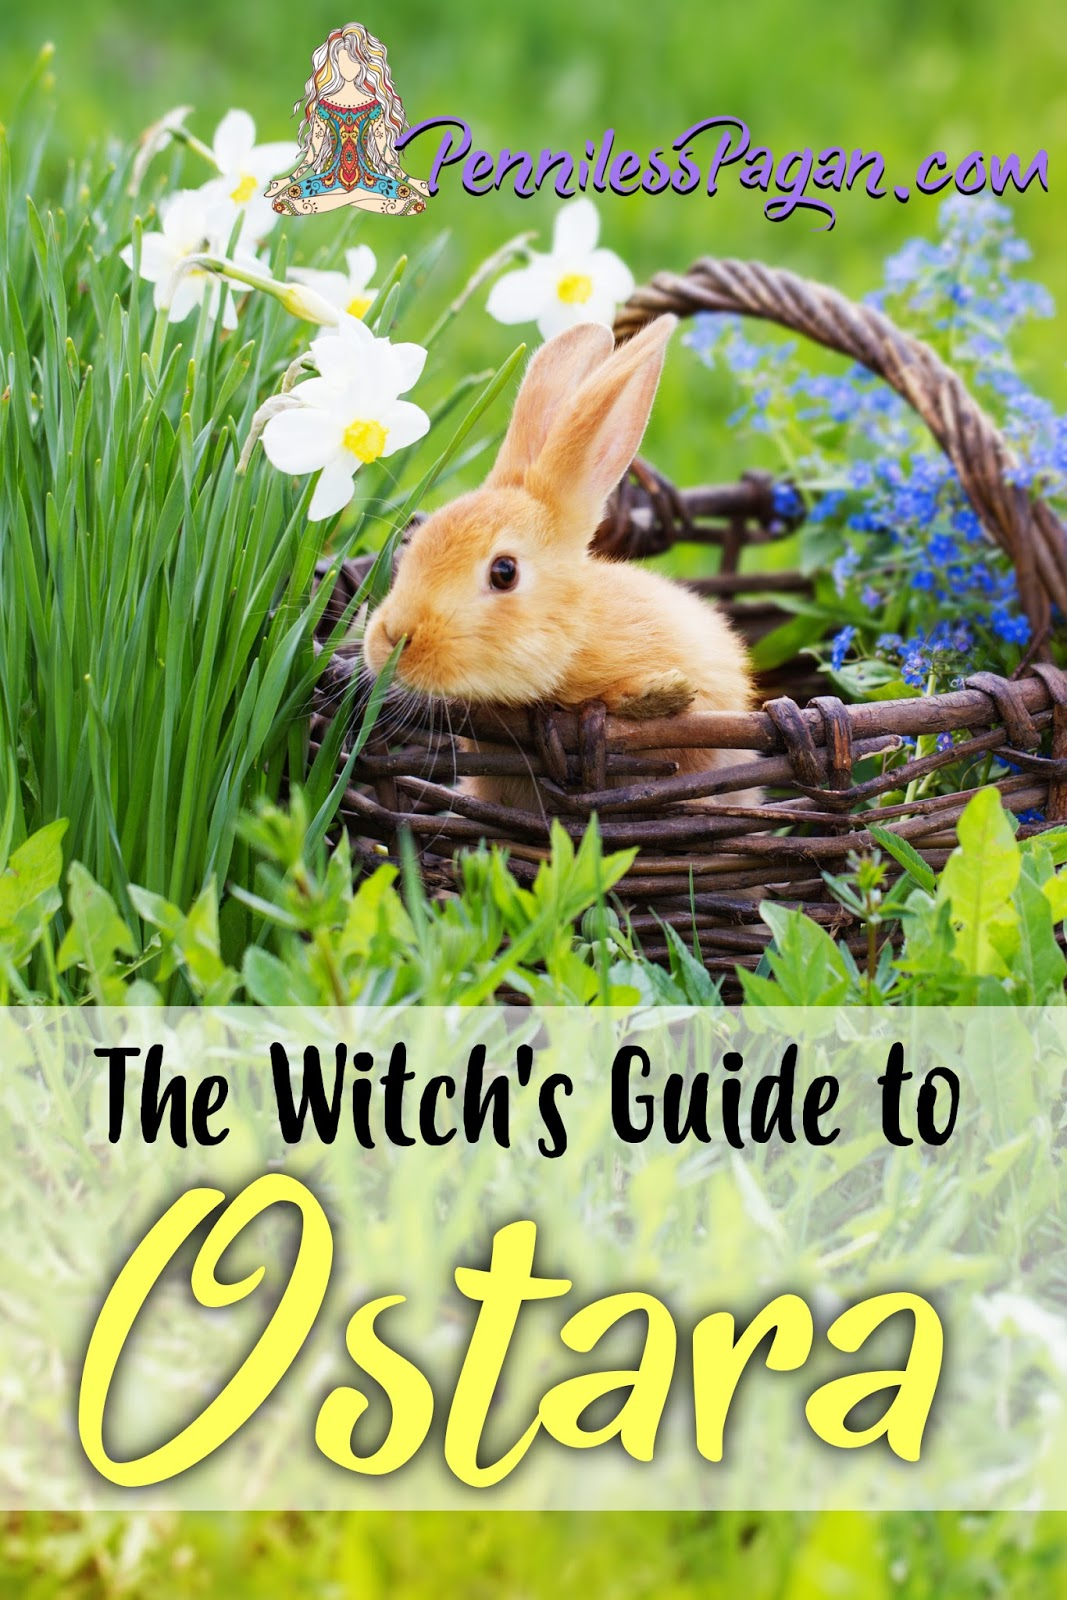 Penniless Pagan: The Witch's Guide to Ostara (Spring Equinox)